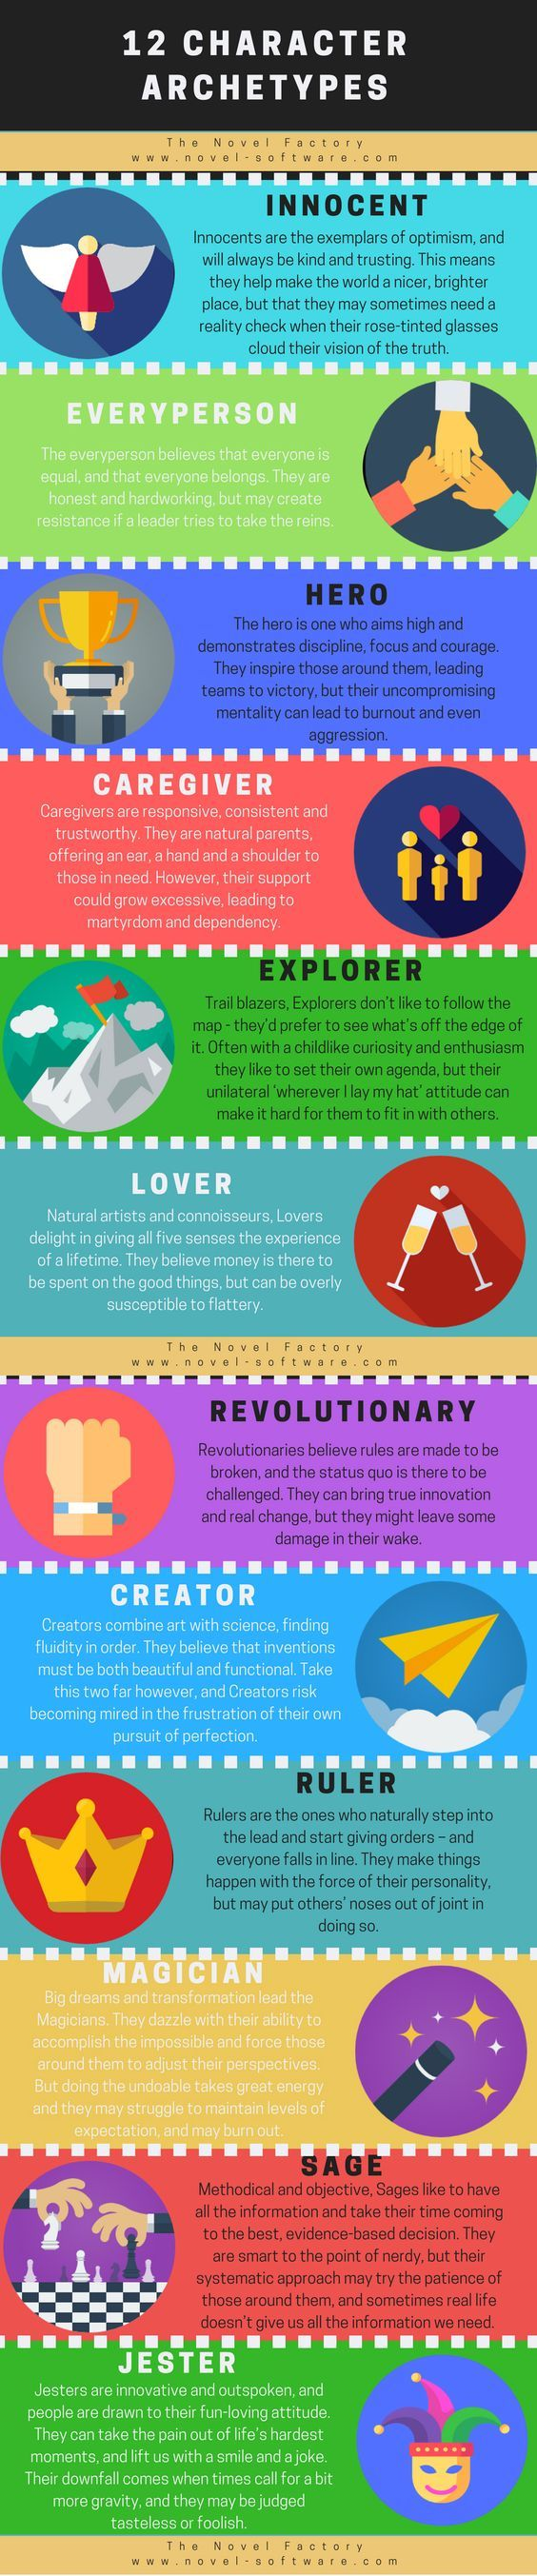 This infographic gives brief summaries of the 12 Jungian personality archetypes, for use when building charcaters. As with any writing tools, archetypes are really most useful if you think of them as a starying block - you cannot simply reduce people to 12 options.   Most people will show traits from multiple categories. As a writer, you may want to think about each character's primary and secondary archetypes.  As always, remember: Tools, not rules!